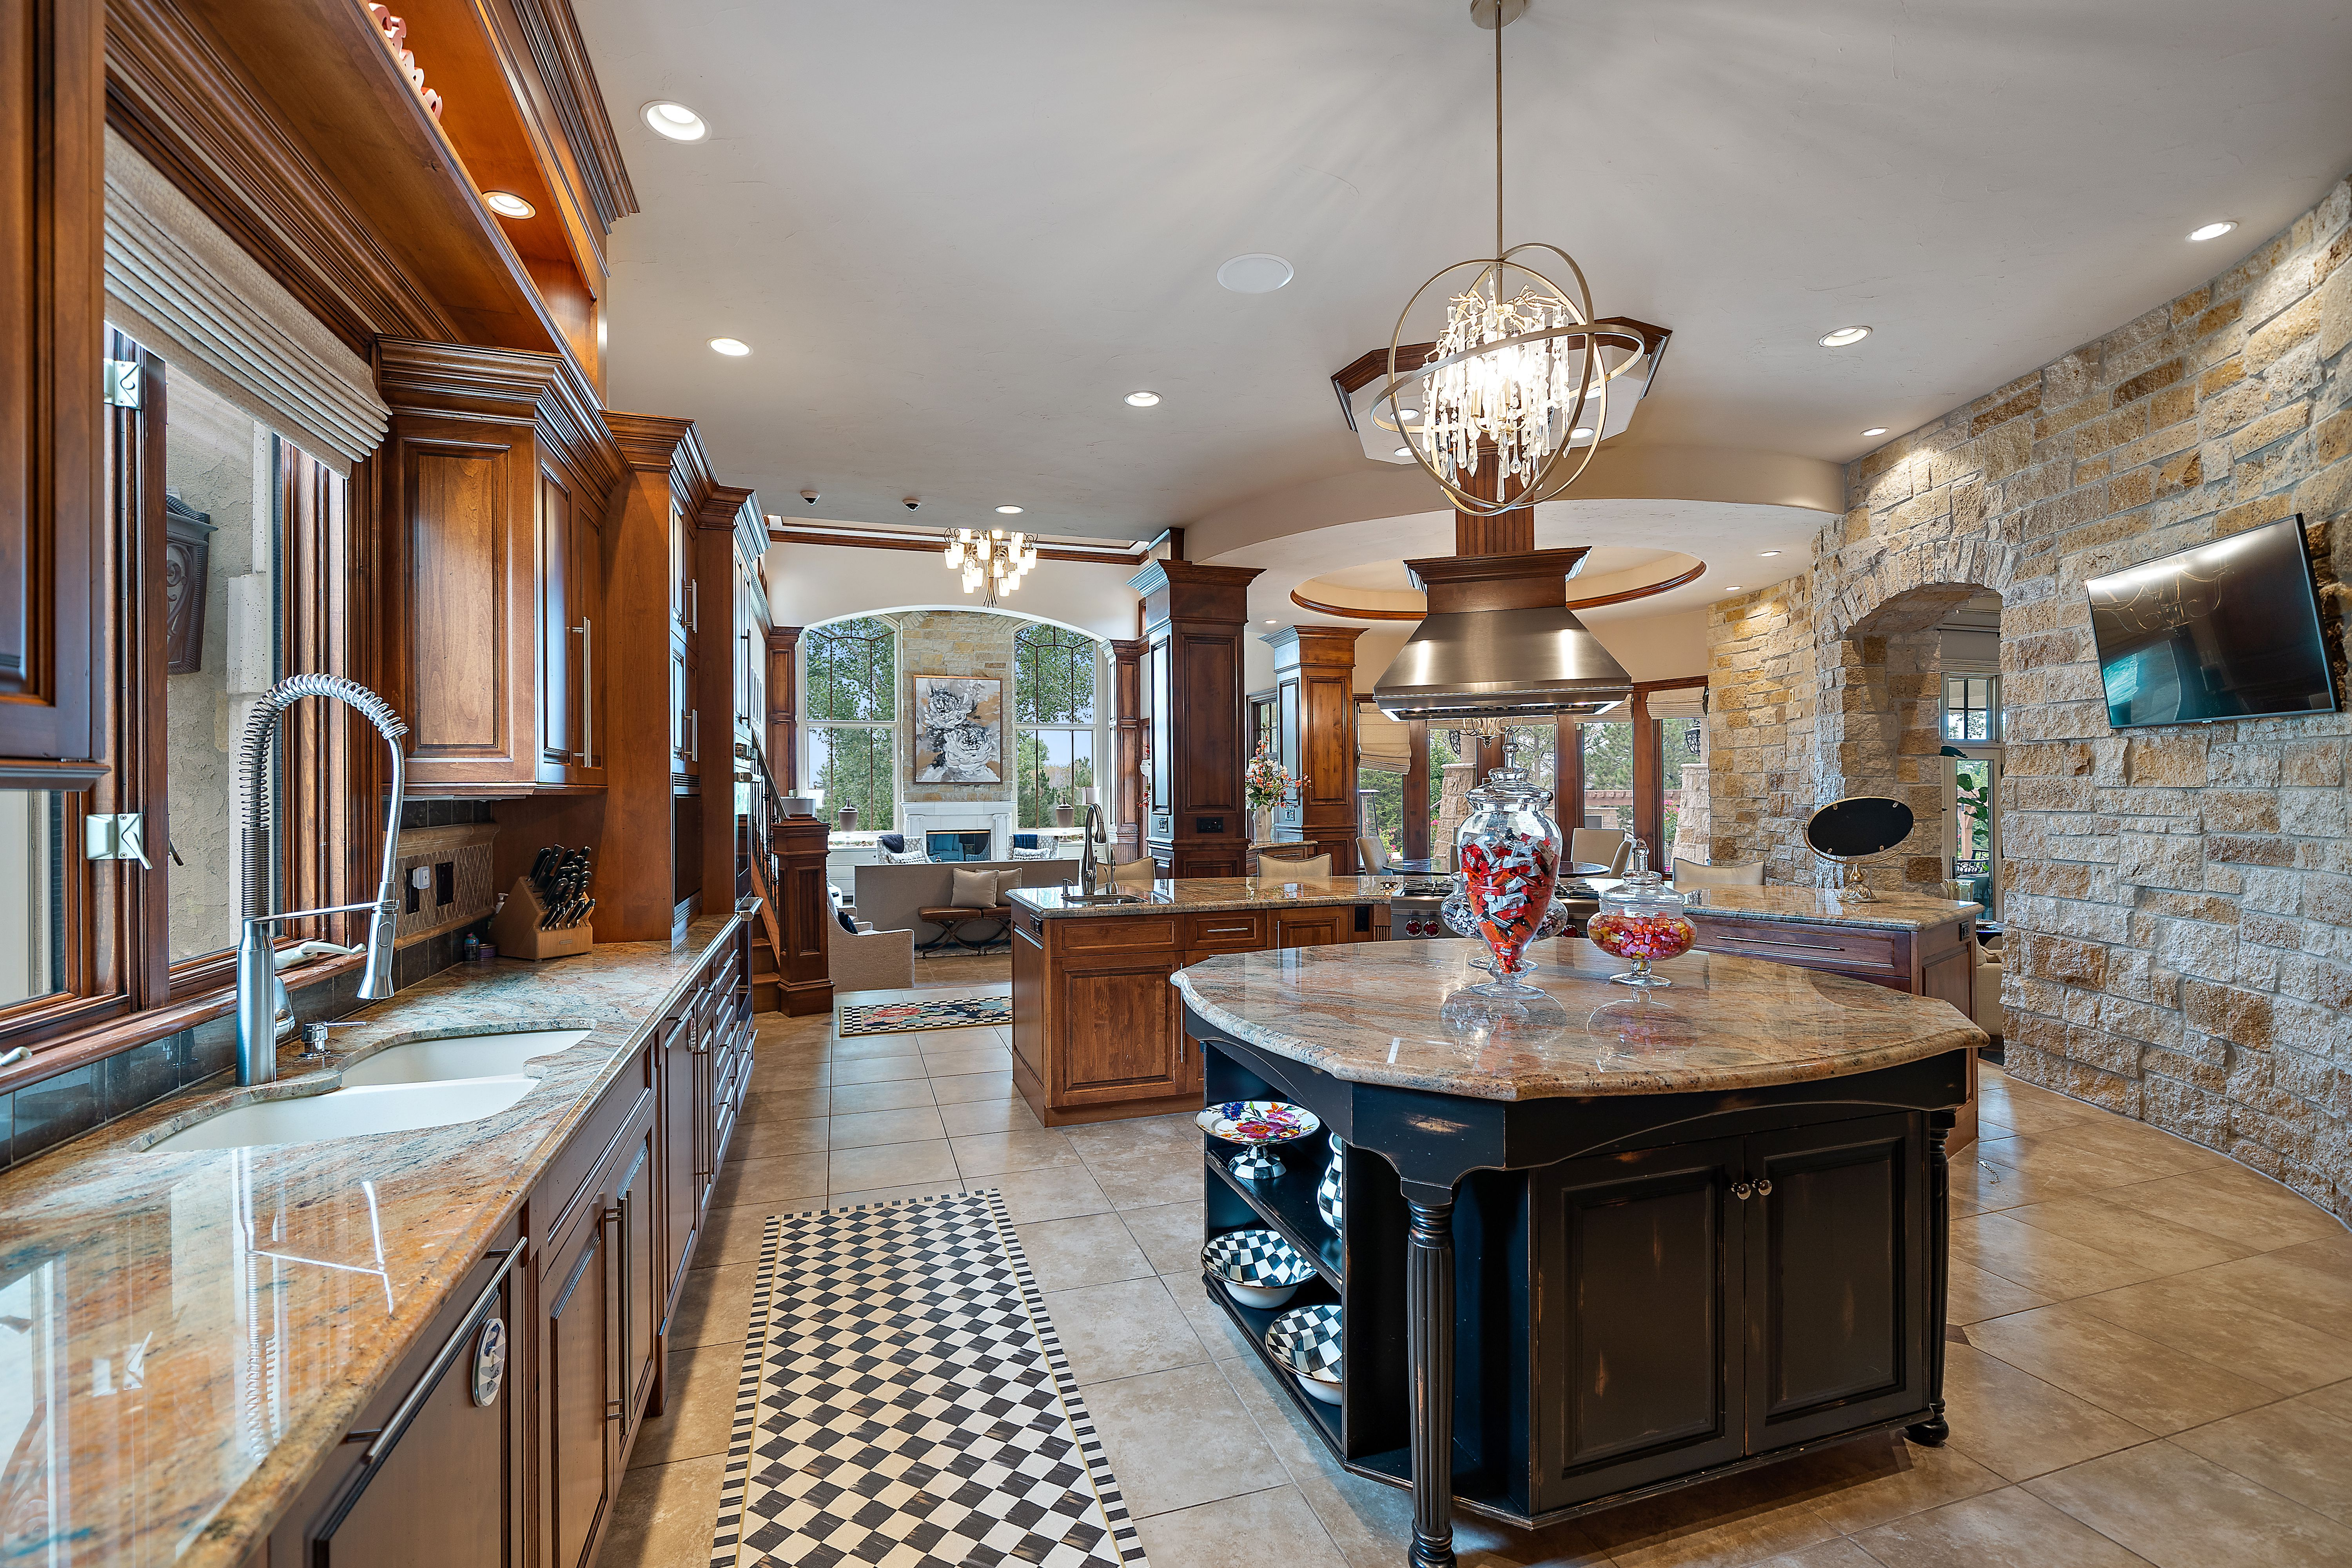 A view inside the large kitchen with an island.